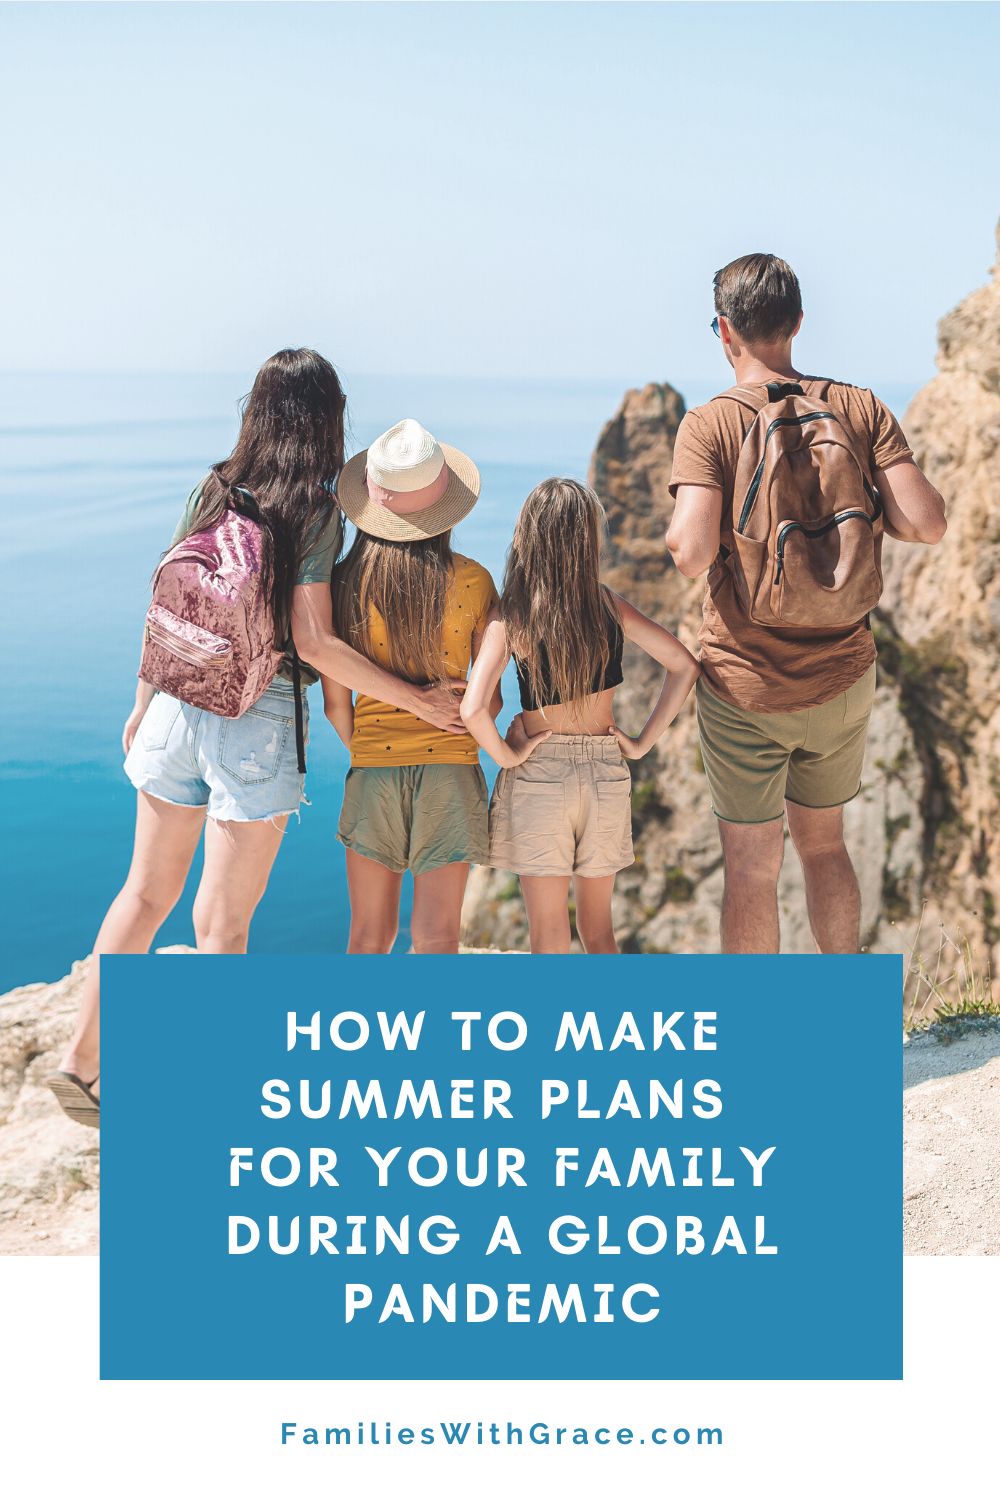 How to make summer plans for your family during a pandemic